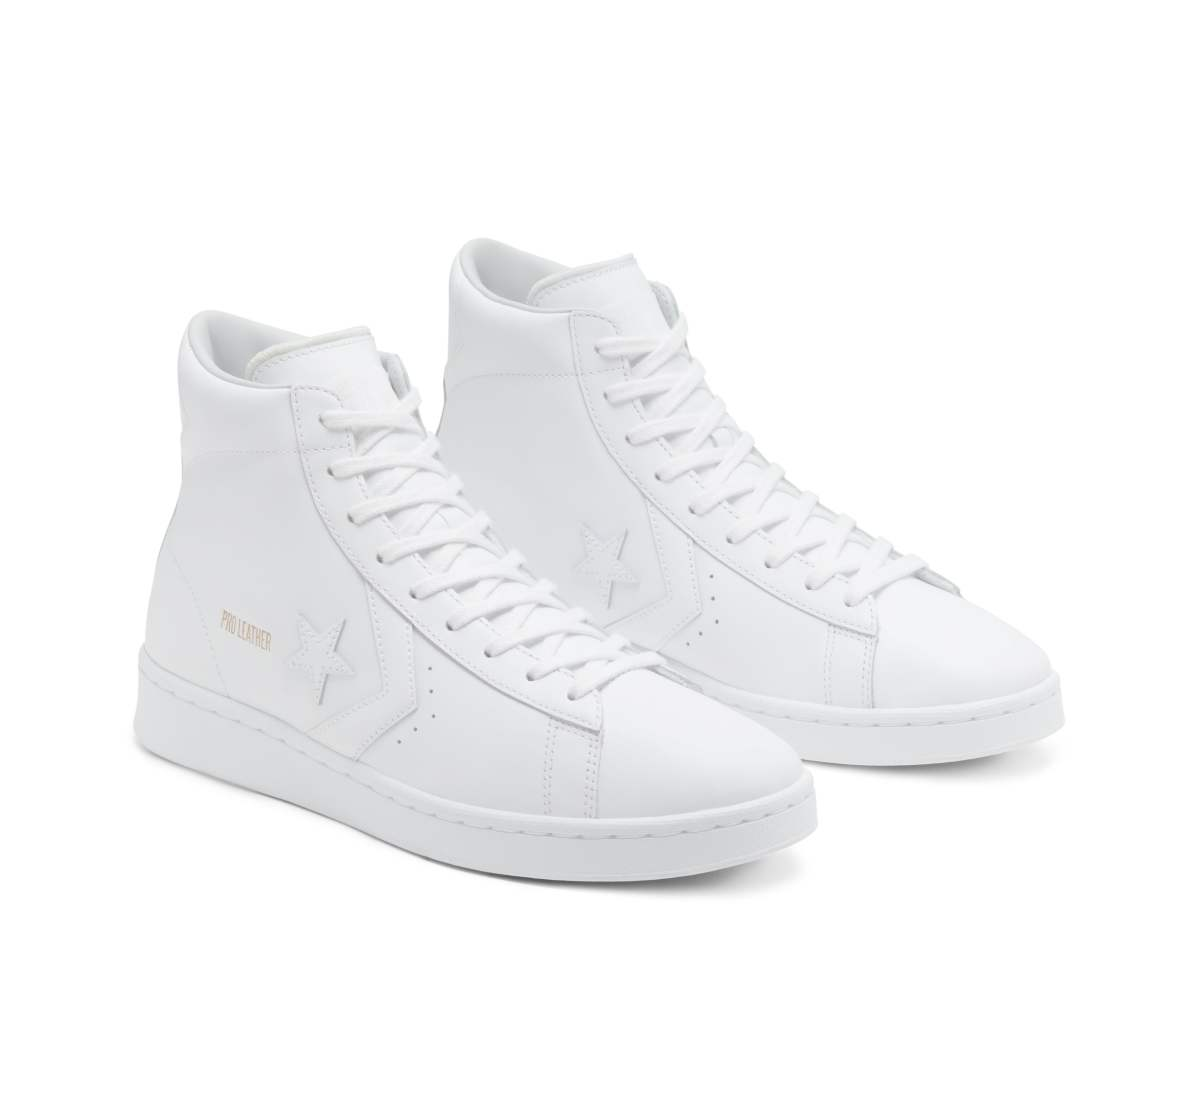 CONVERSE PRO LEATHER MID WHITE